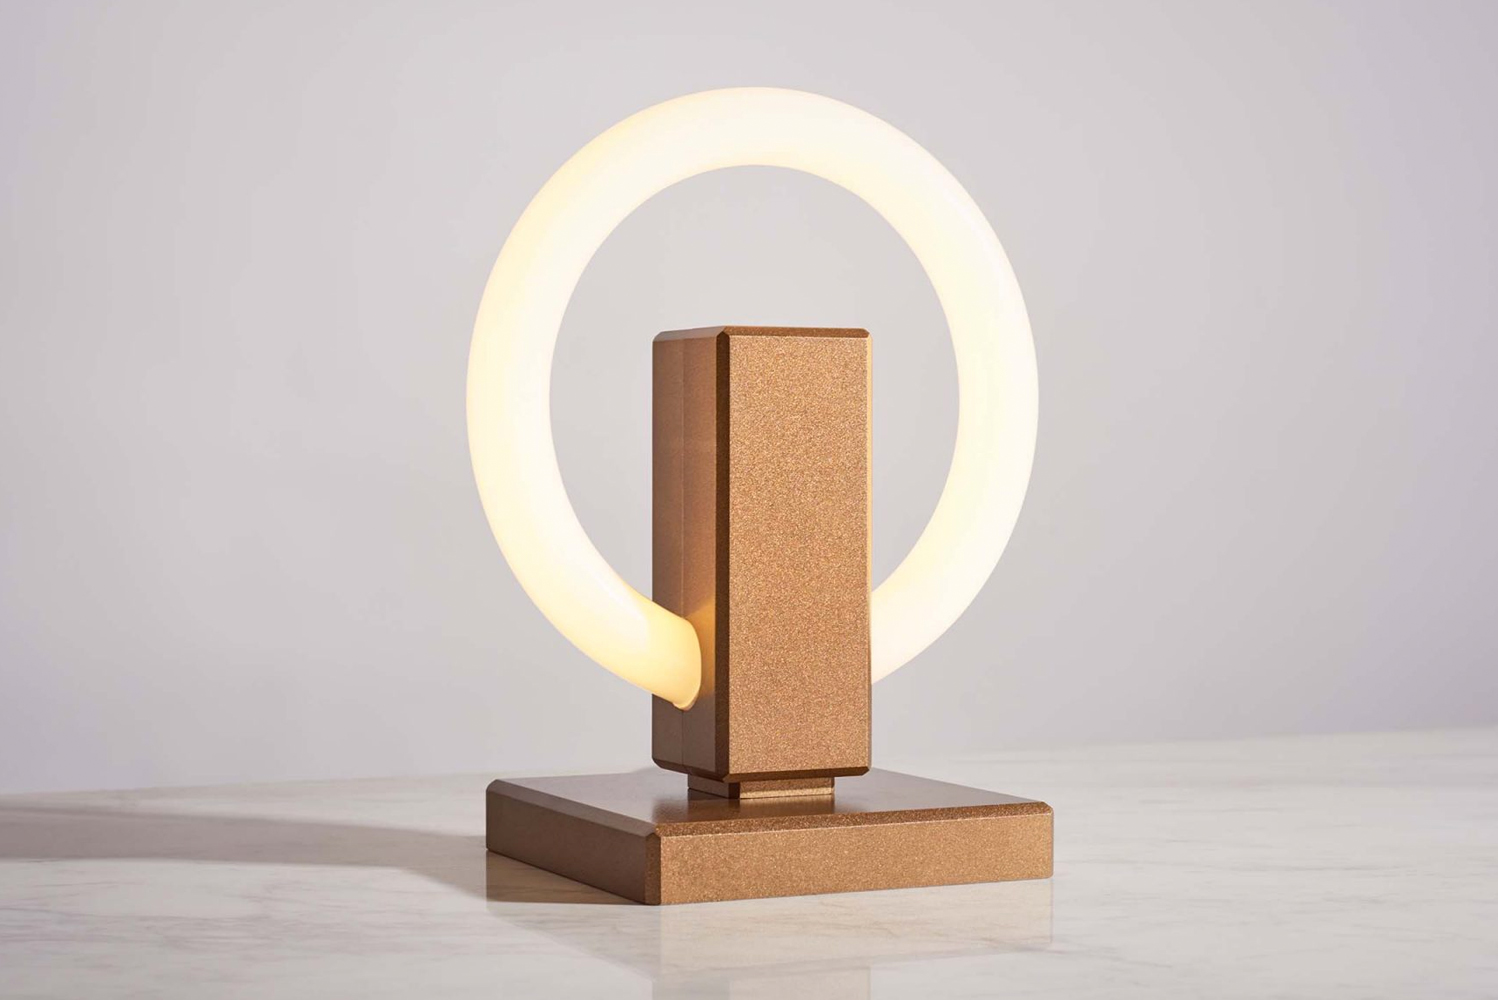 Olah takes aesthetic inspiration from a previously designed wall sconce to bring a new luminaire to life.